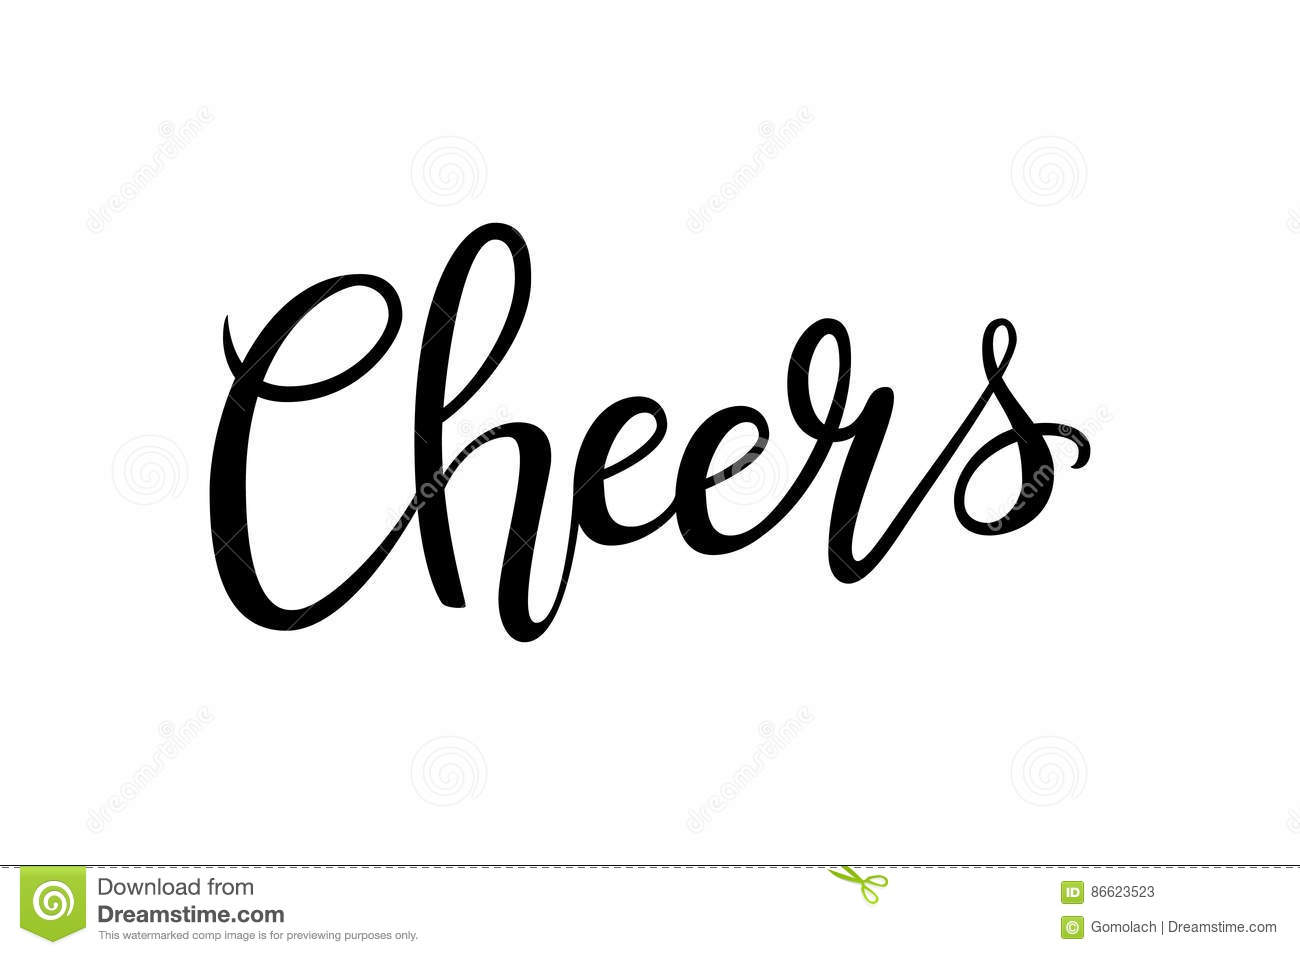 Cheers Hand Drawn Lettering Decoration Text On White